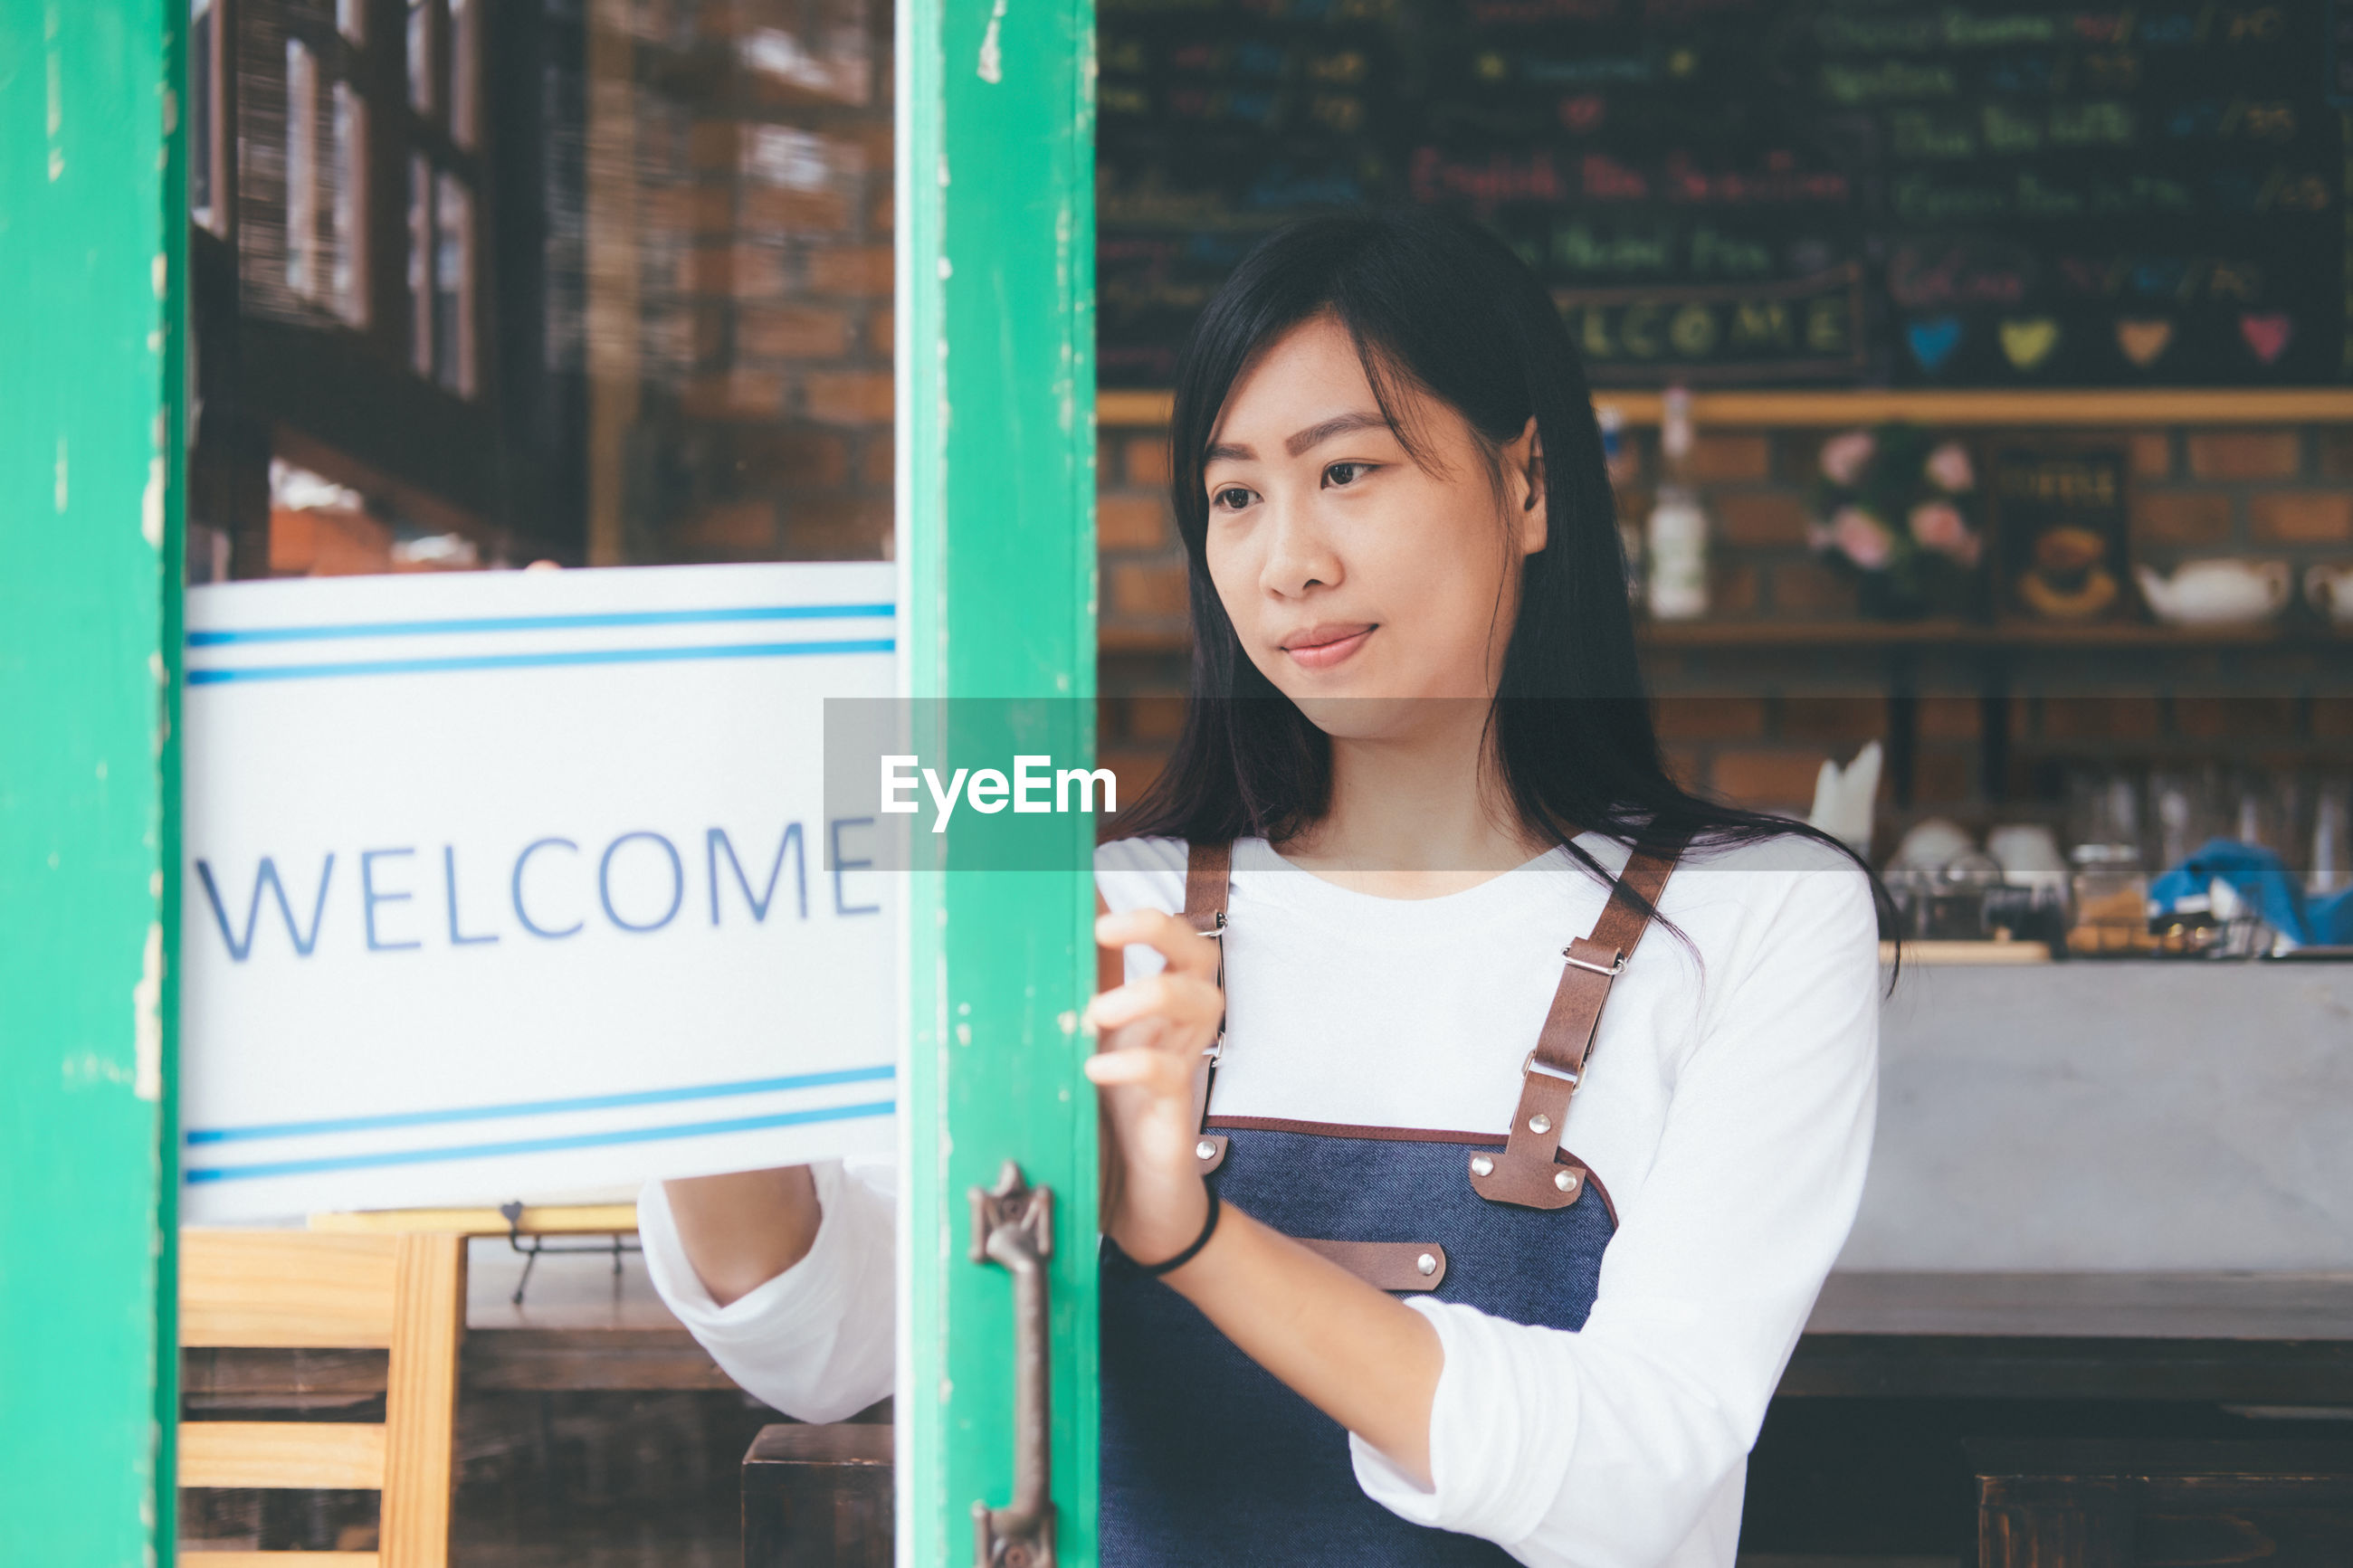 Owner with welcome sign standing in store